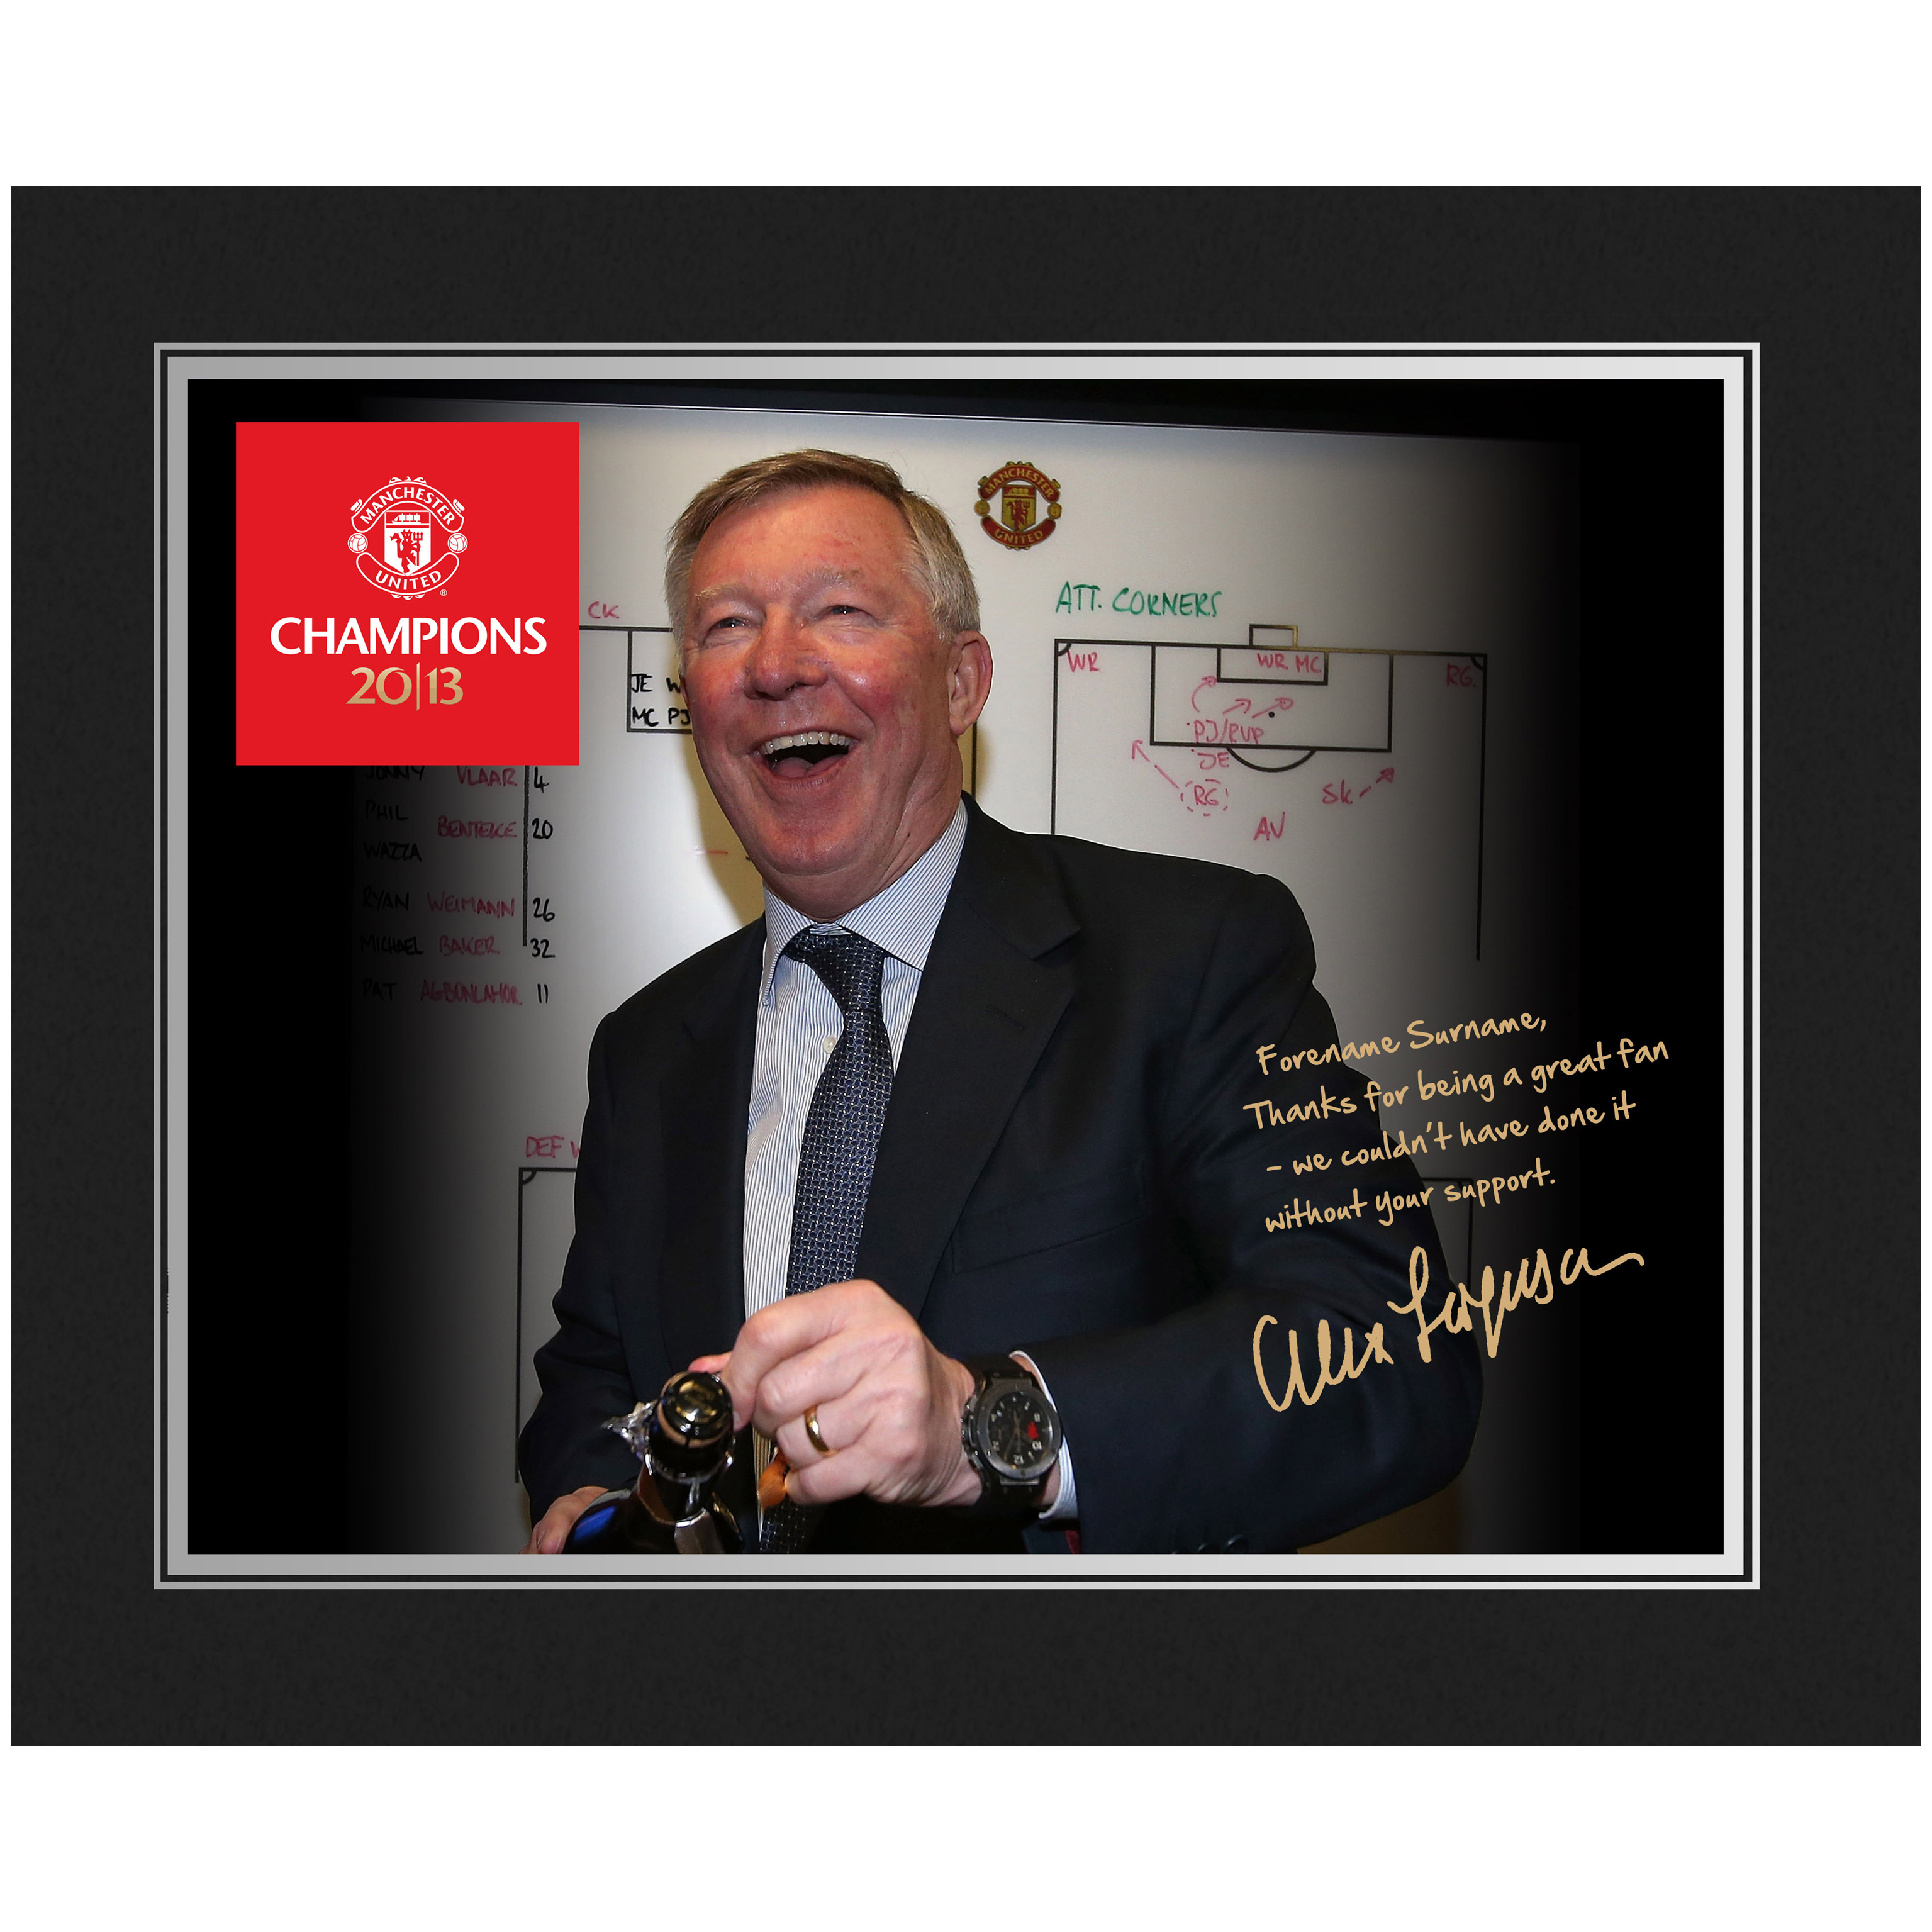 Manchester United Personalised Champions 2013 Player Photo in Presentation Folder - Ferguson